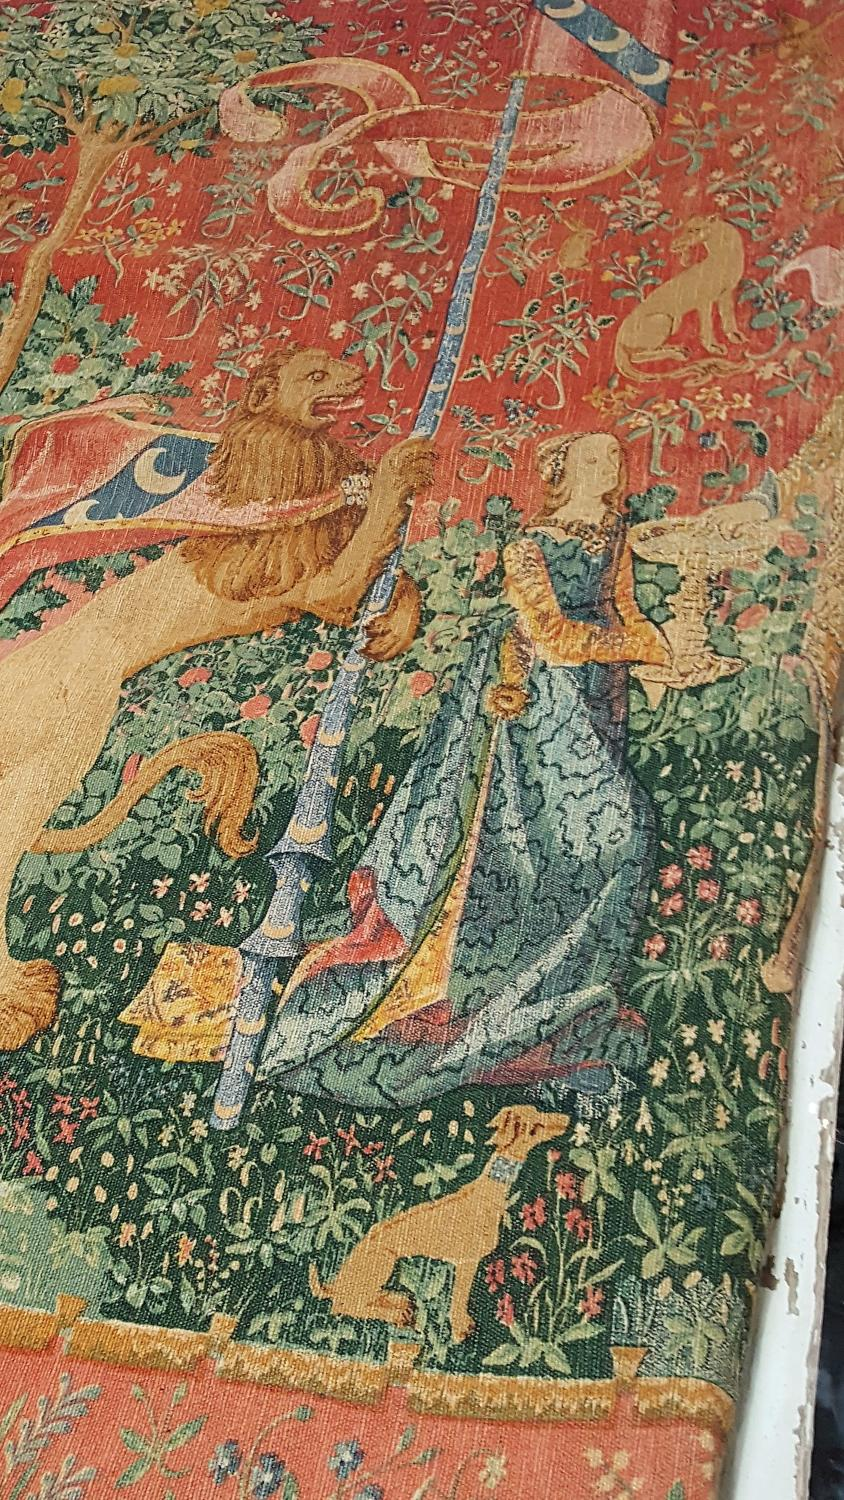 Cluny Tapestry The Lady and the Unicorn